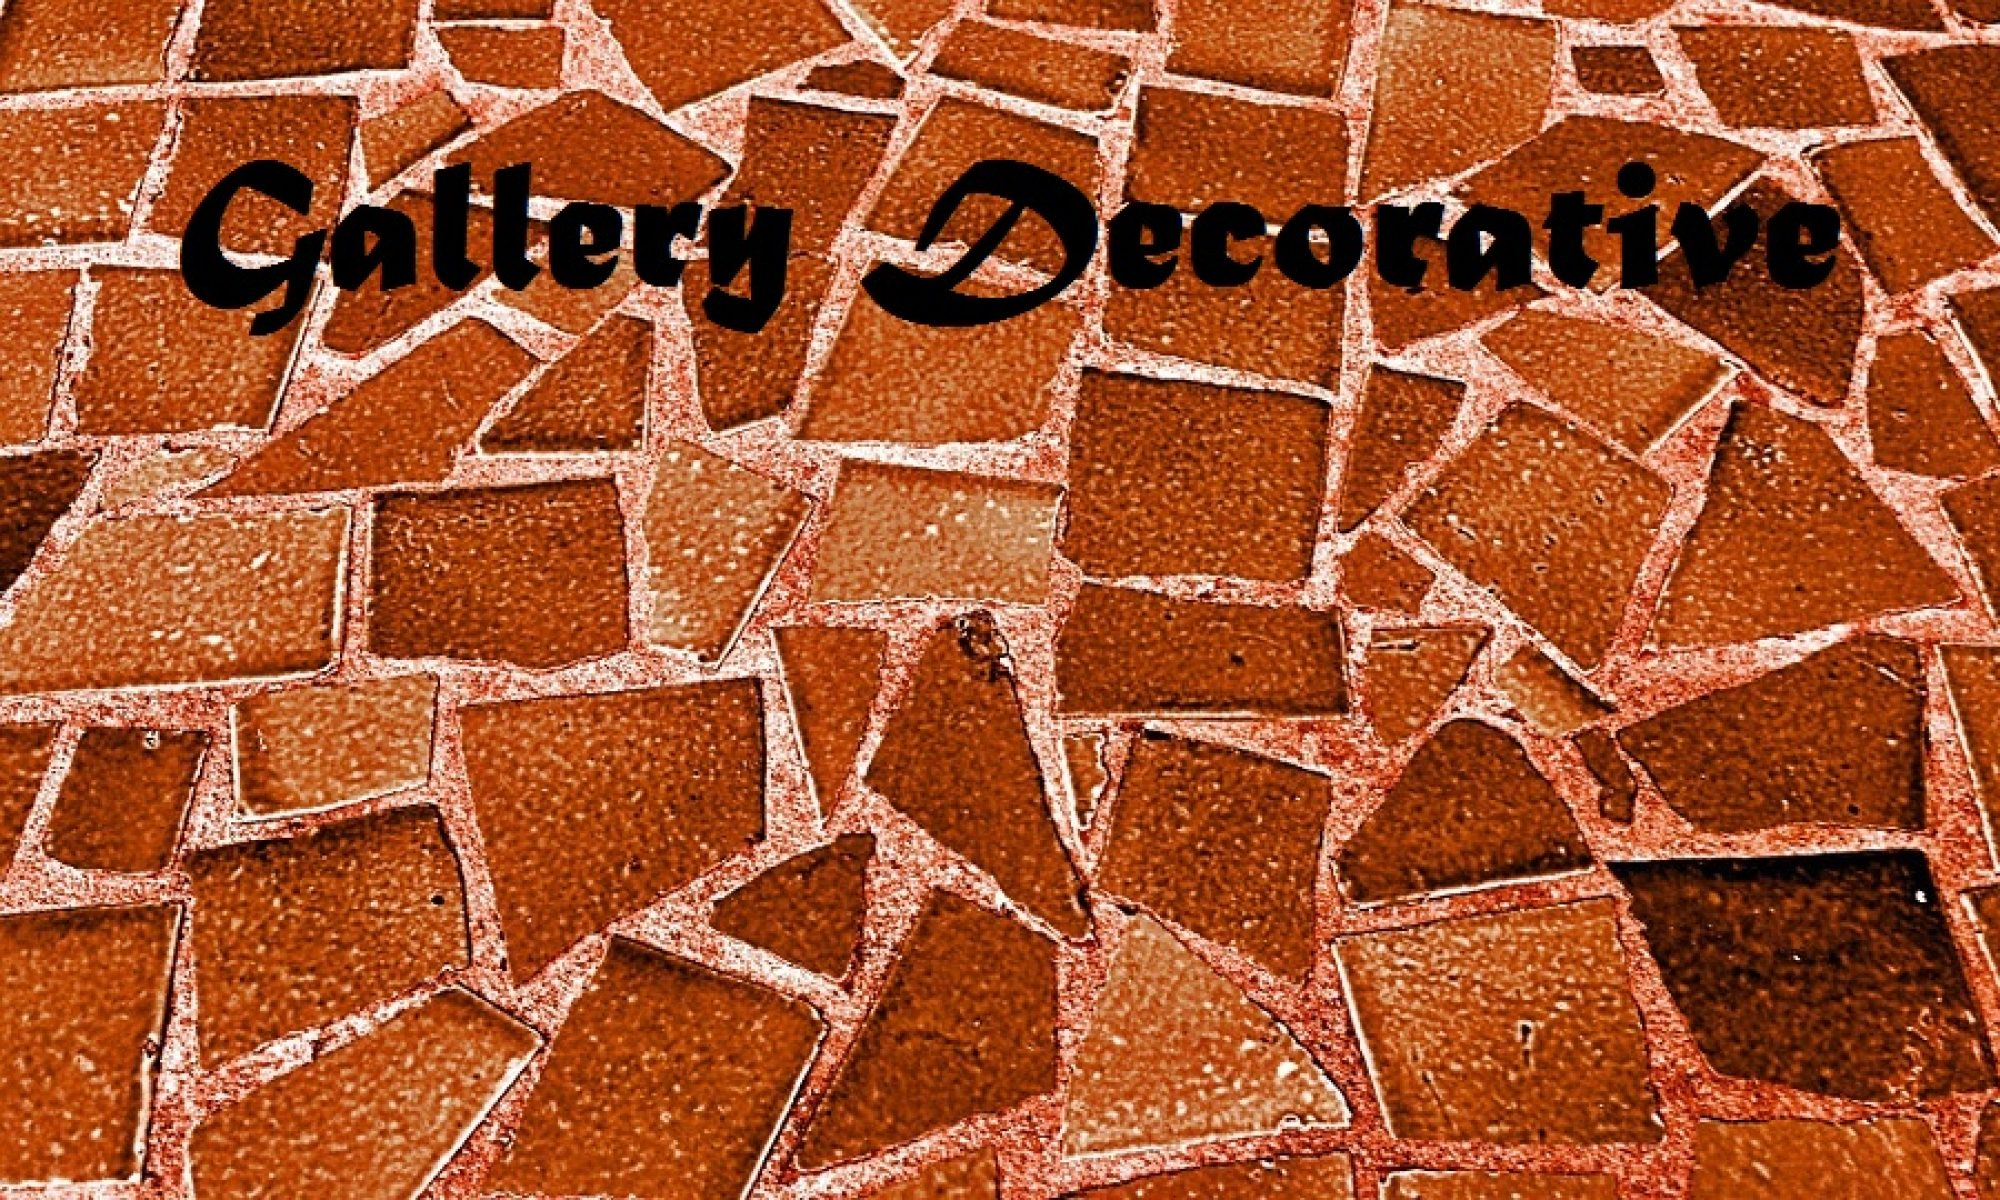 gallerydecorartive.com